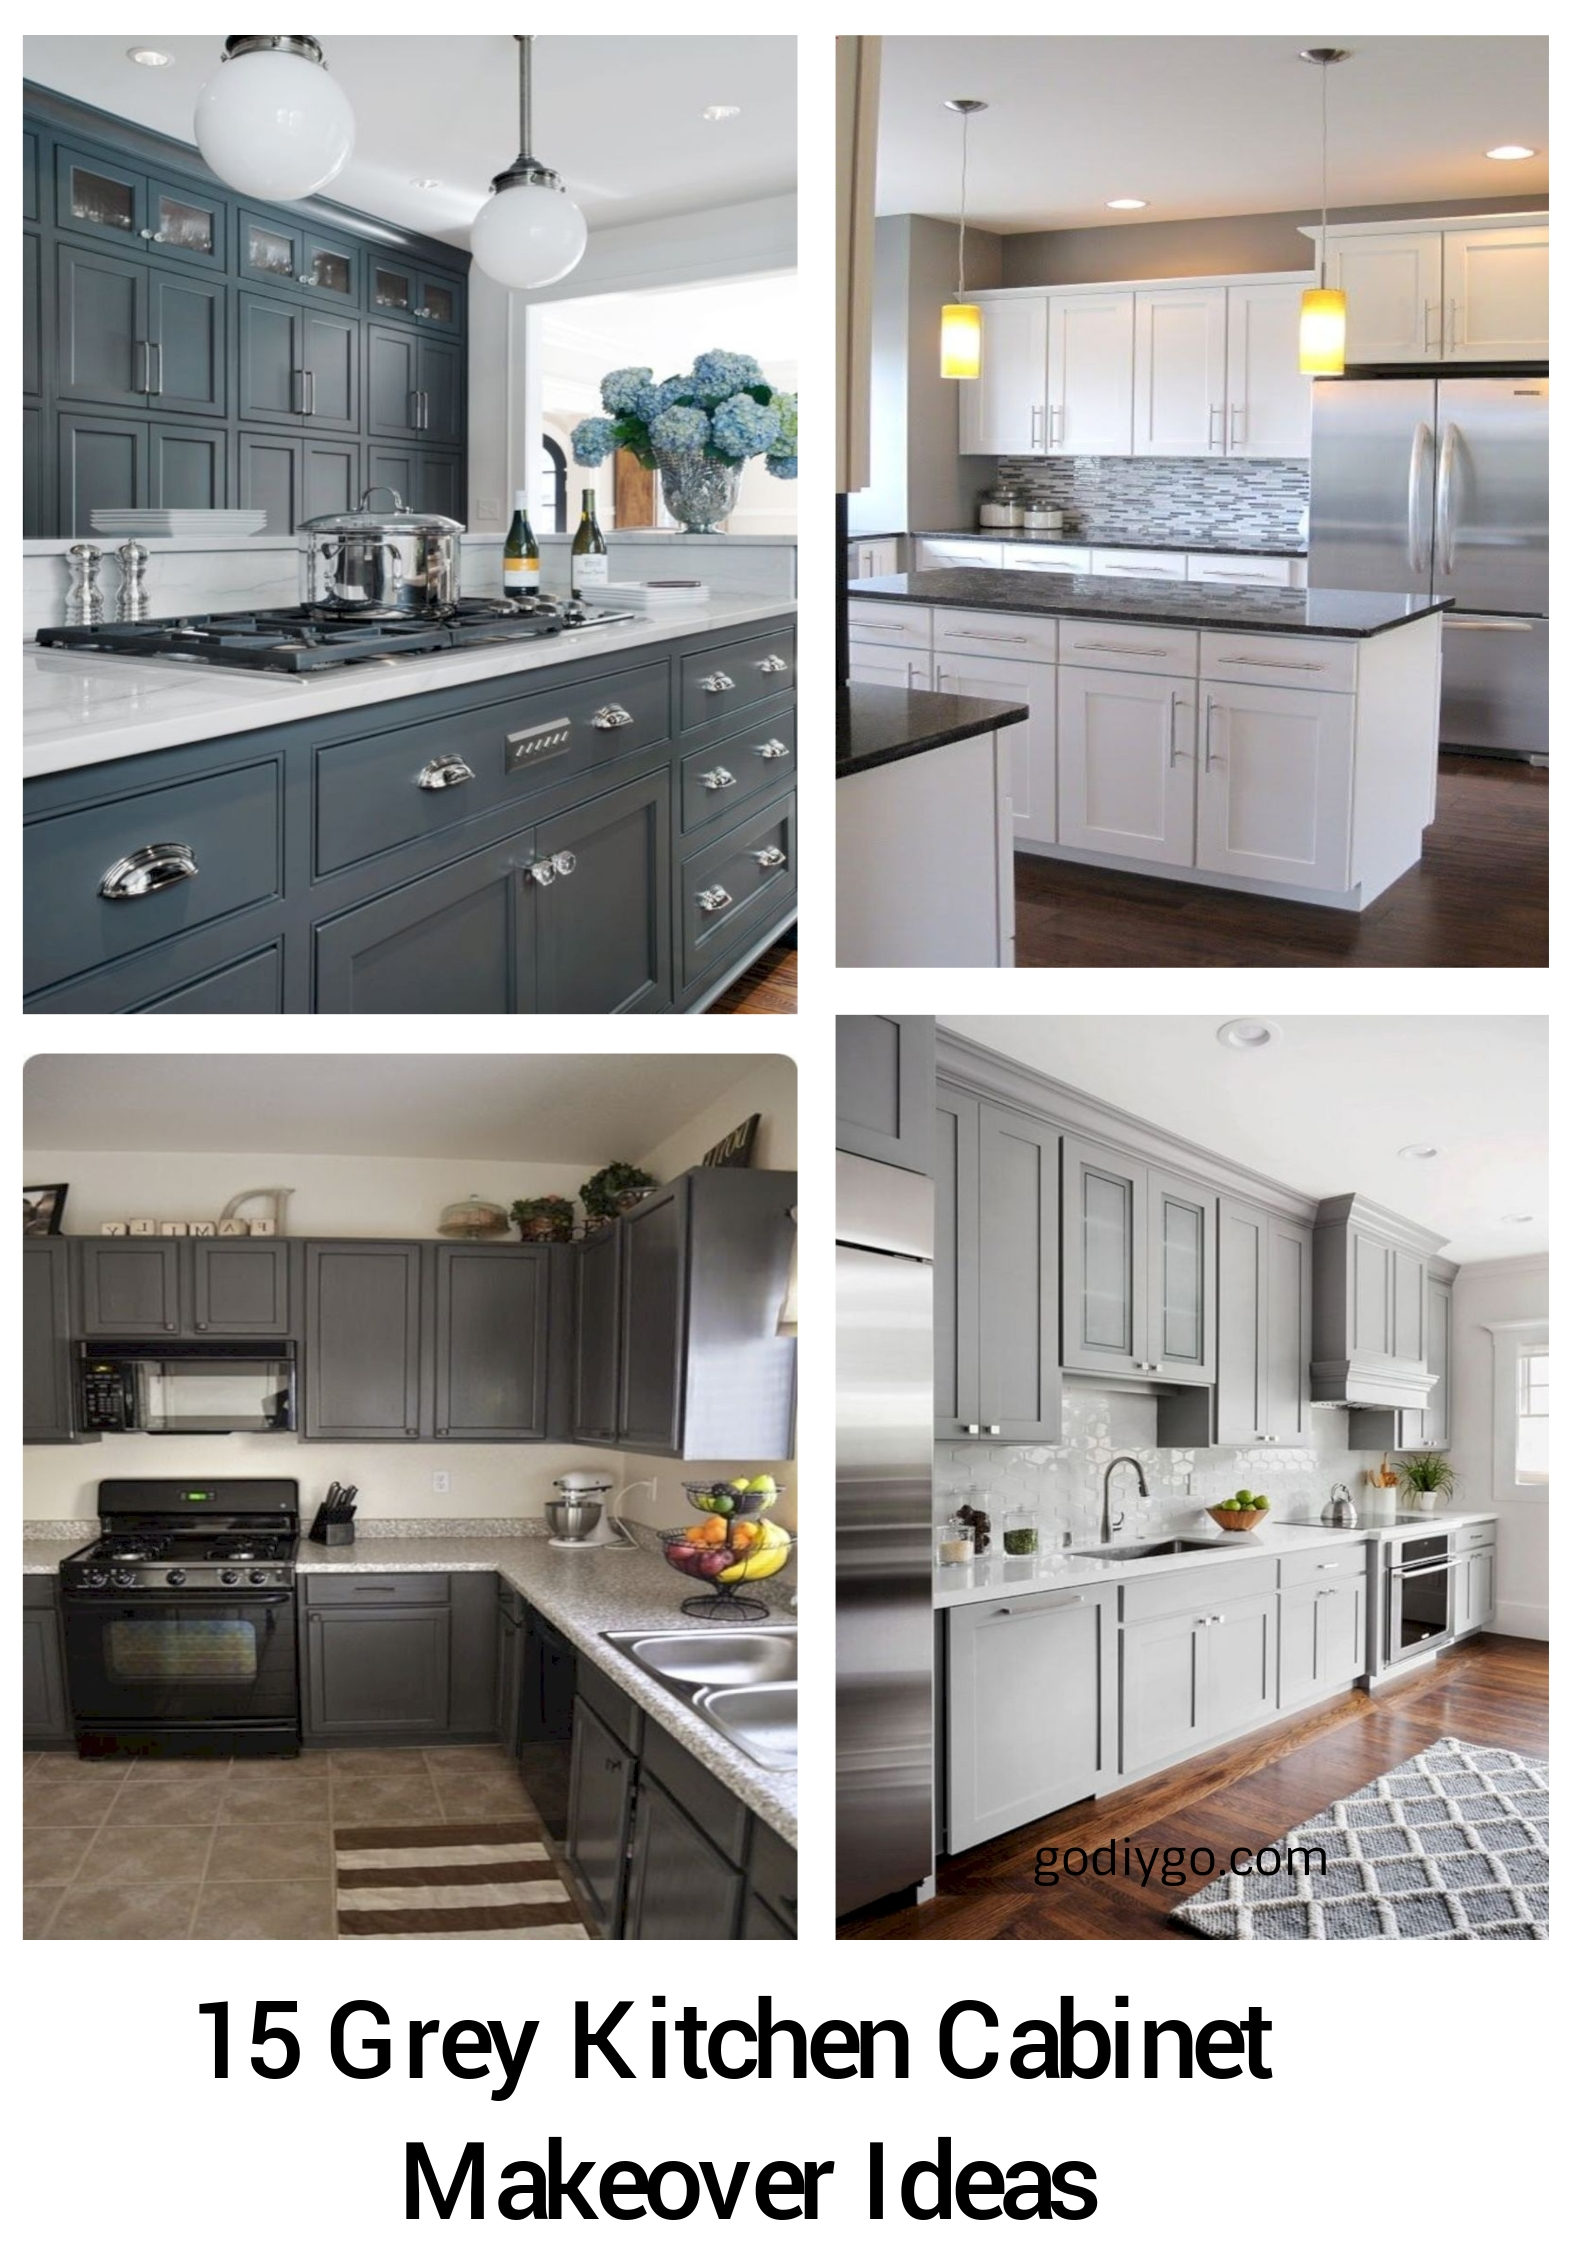 15 Grey Kitchen Cabinet Makeover Ideas - GODIYGO.COM Ideas For Kitchen Cabinet Makeover on ideas for fireplace makeovers, ideas for living room makeovers, ideas for kitchen countertops, ideas for bedroom makeovers, small galley kitchen makeovers, ideas small kitchen makeovers before and after, ideas for lamp makeovers, kitchen counter makeovers, ideas for mirror makeovers,